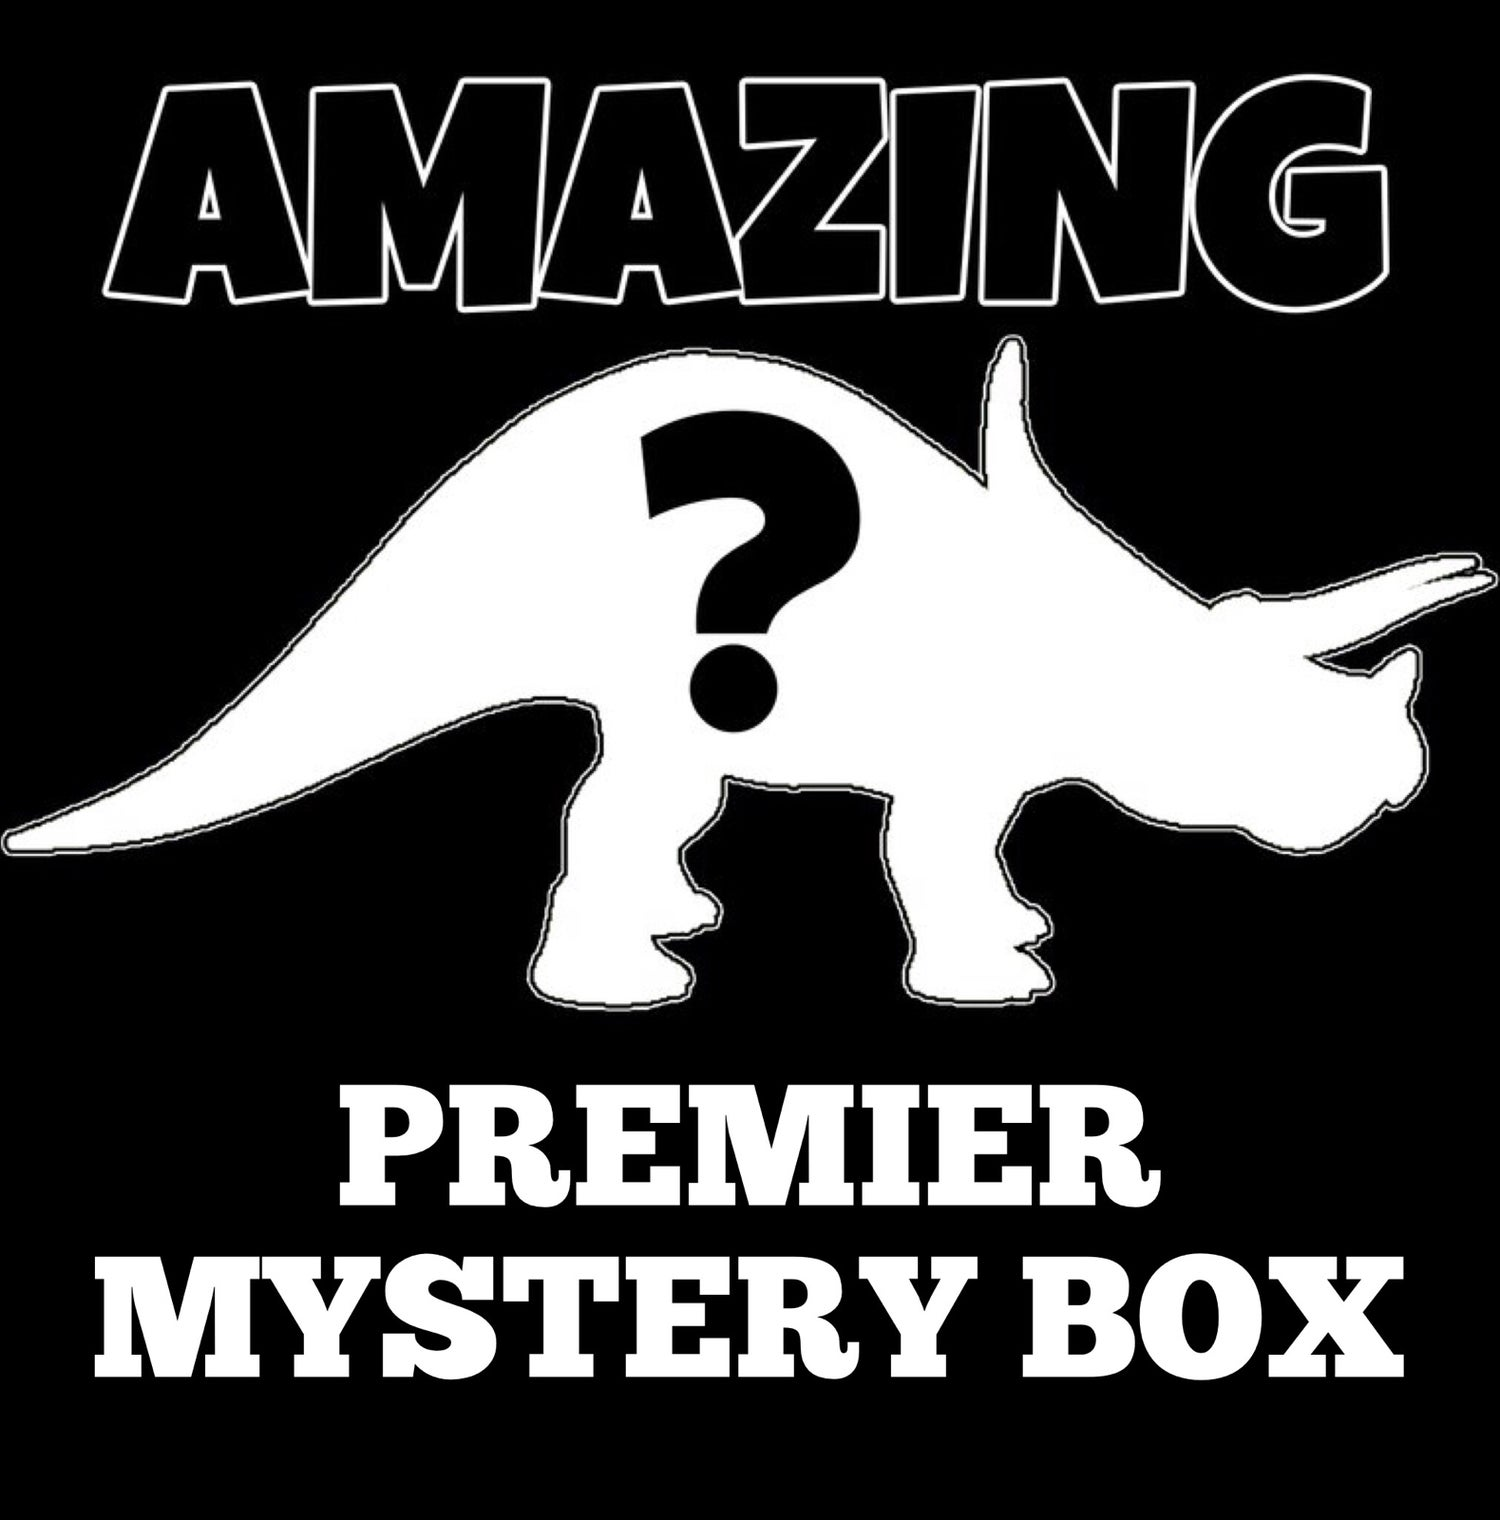 Image of AMAZING PREMIER MYSTERY BOX